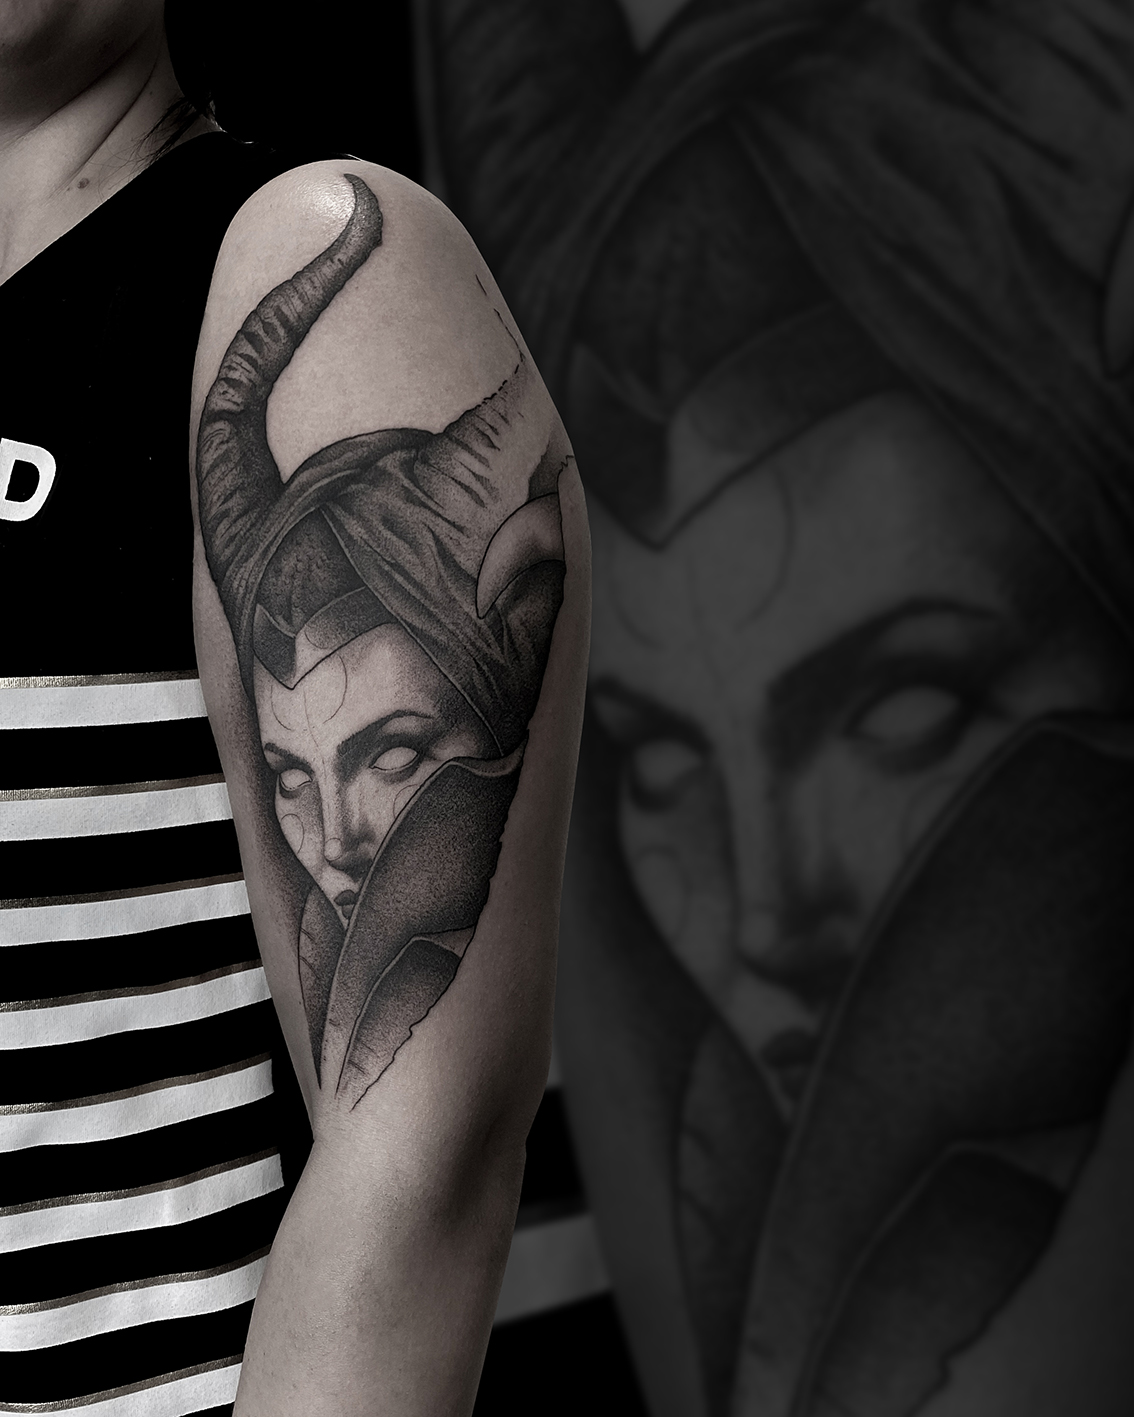 Tattoo Zincik - Maleficent tattoo